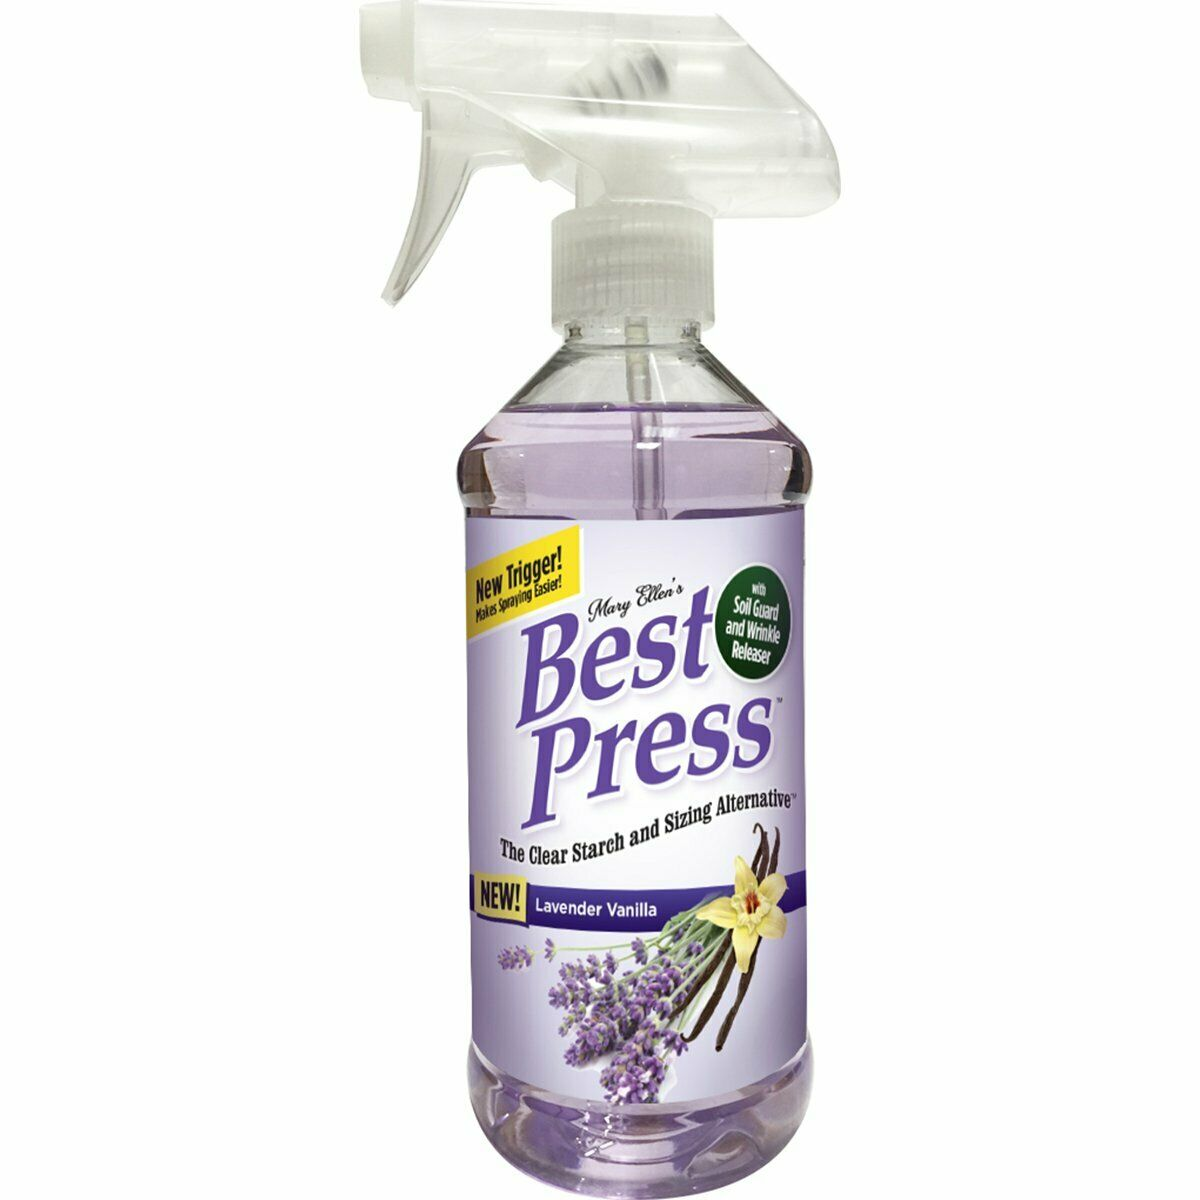 Mary Ellen's Best Press Ironing Spray 16 oz Lavender Vanilla